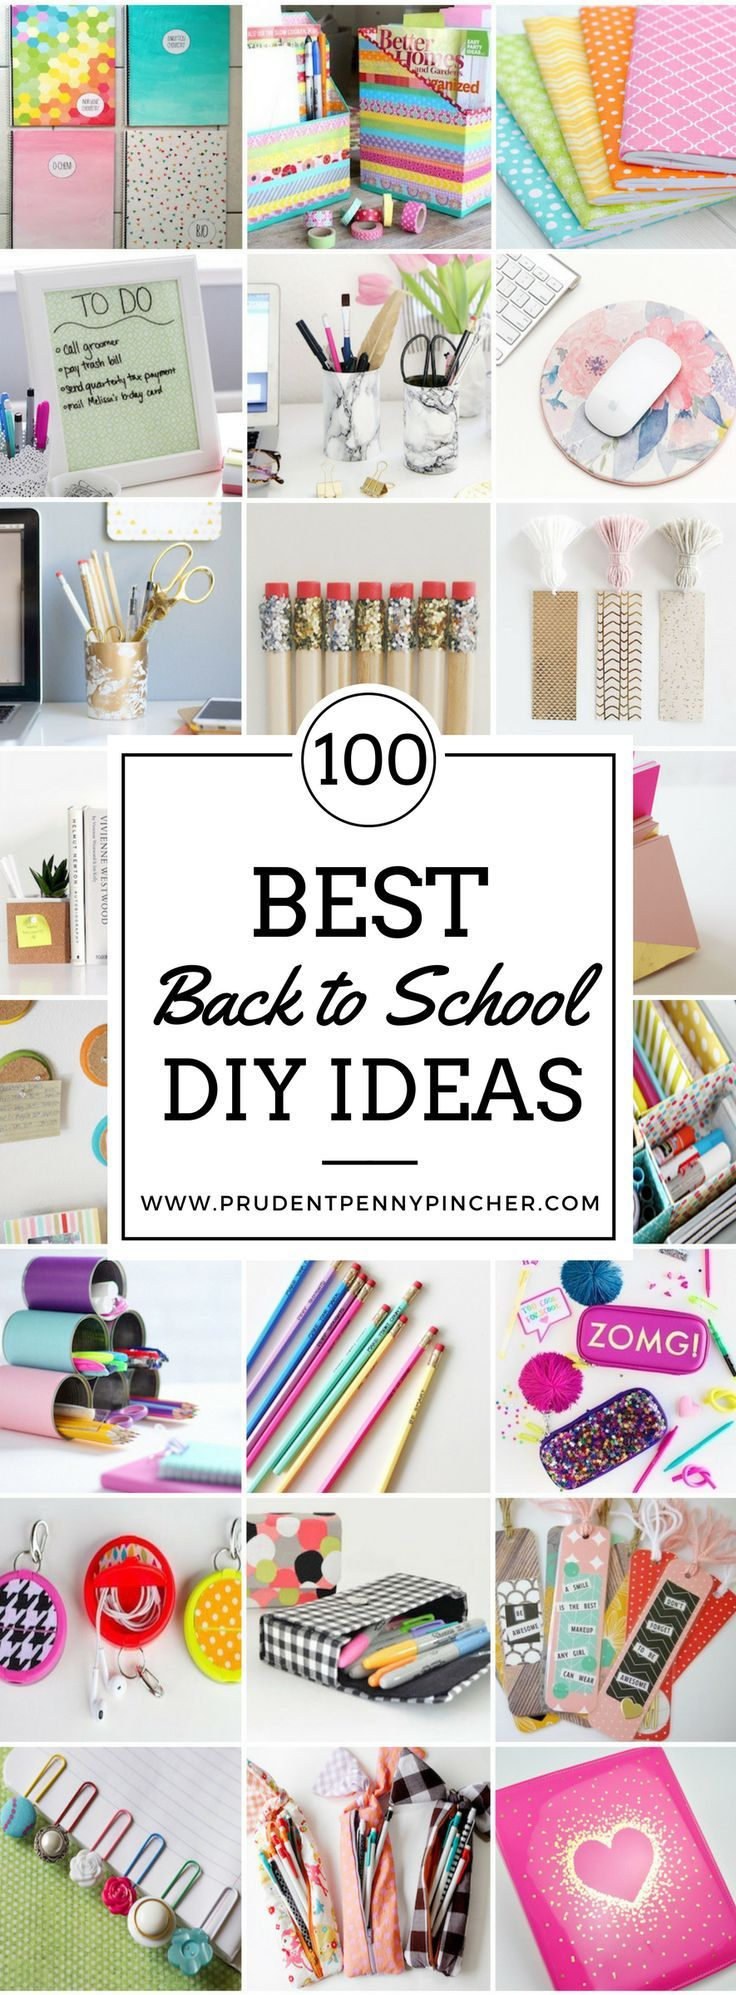 100 best back to school diy ideas back to school pinterest scolaire fourniture scolaire. Black Bedroom Furniture Sets. Home Design Ideas